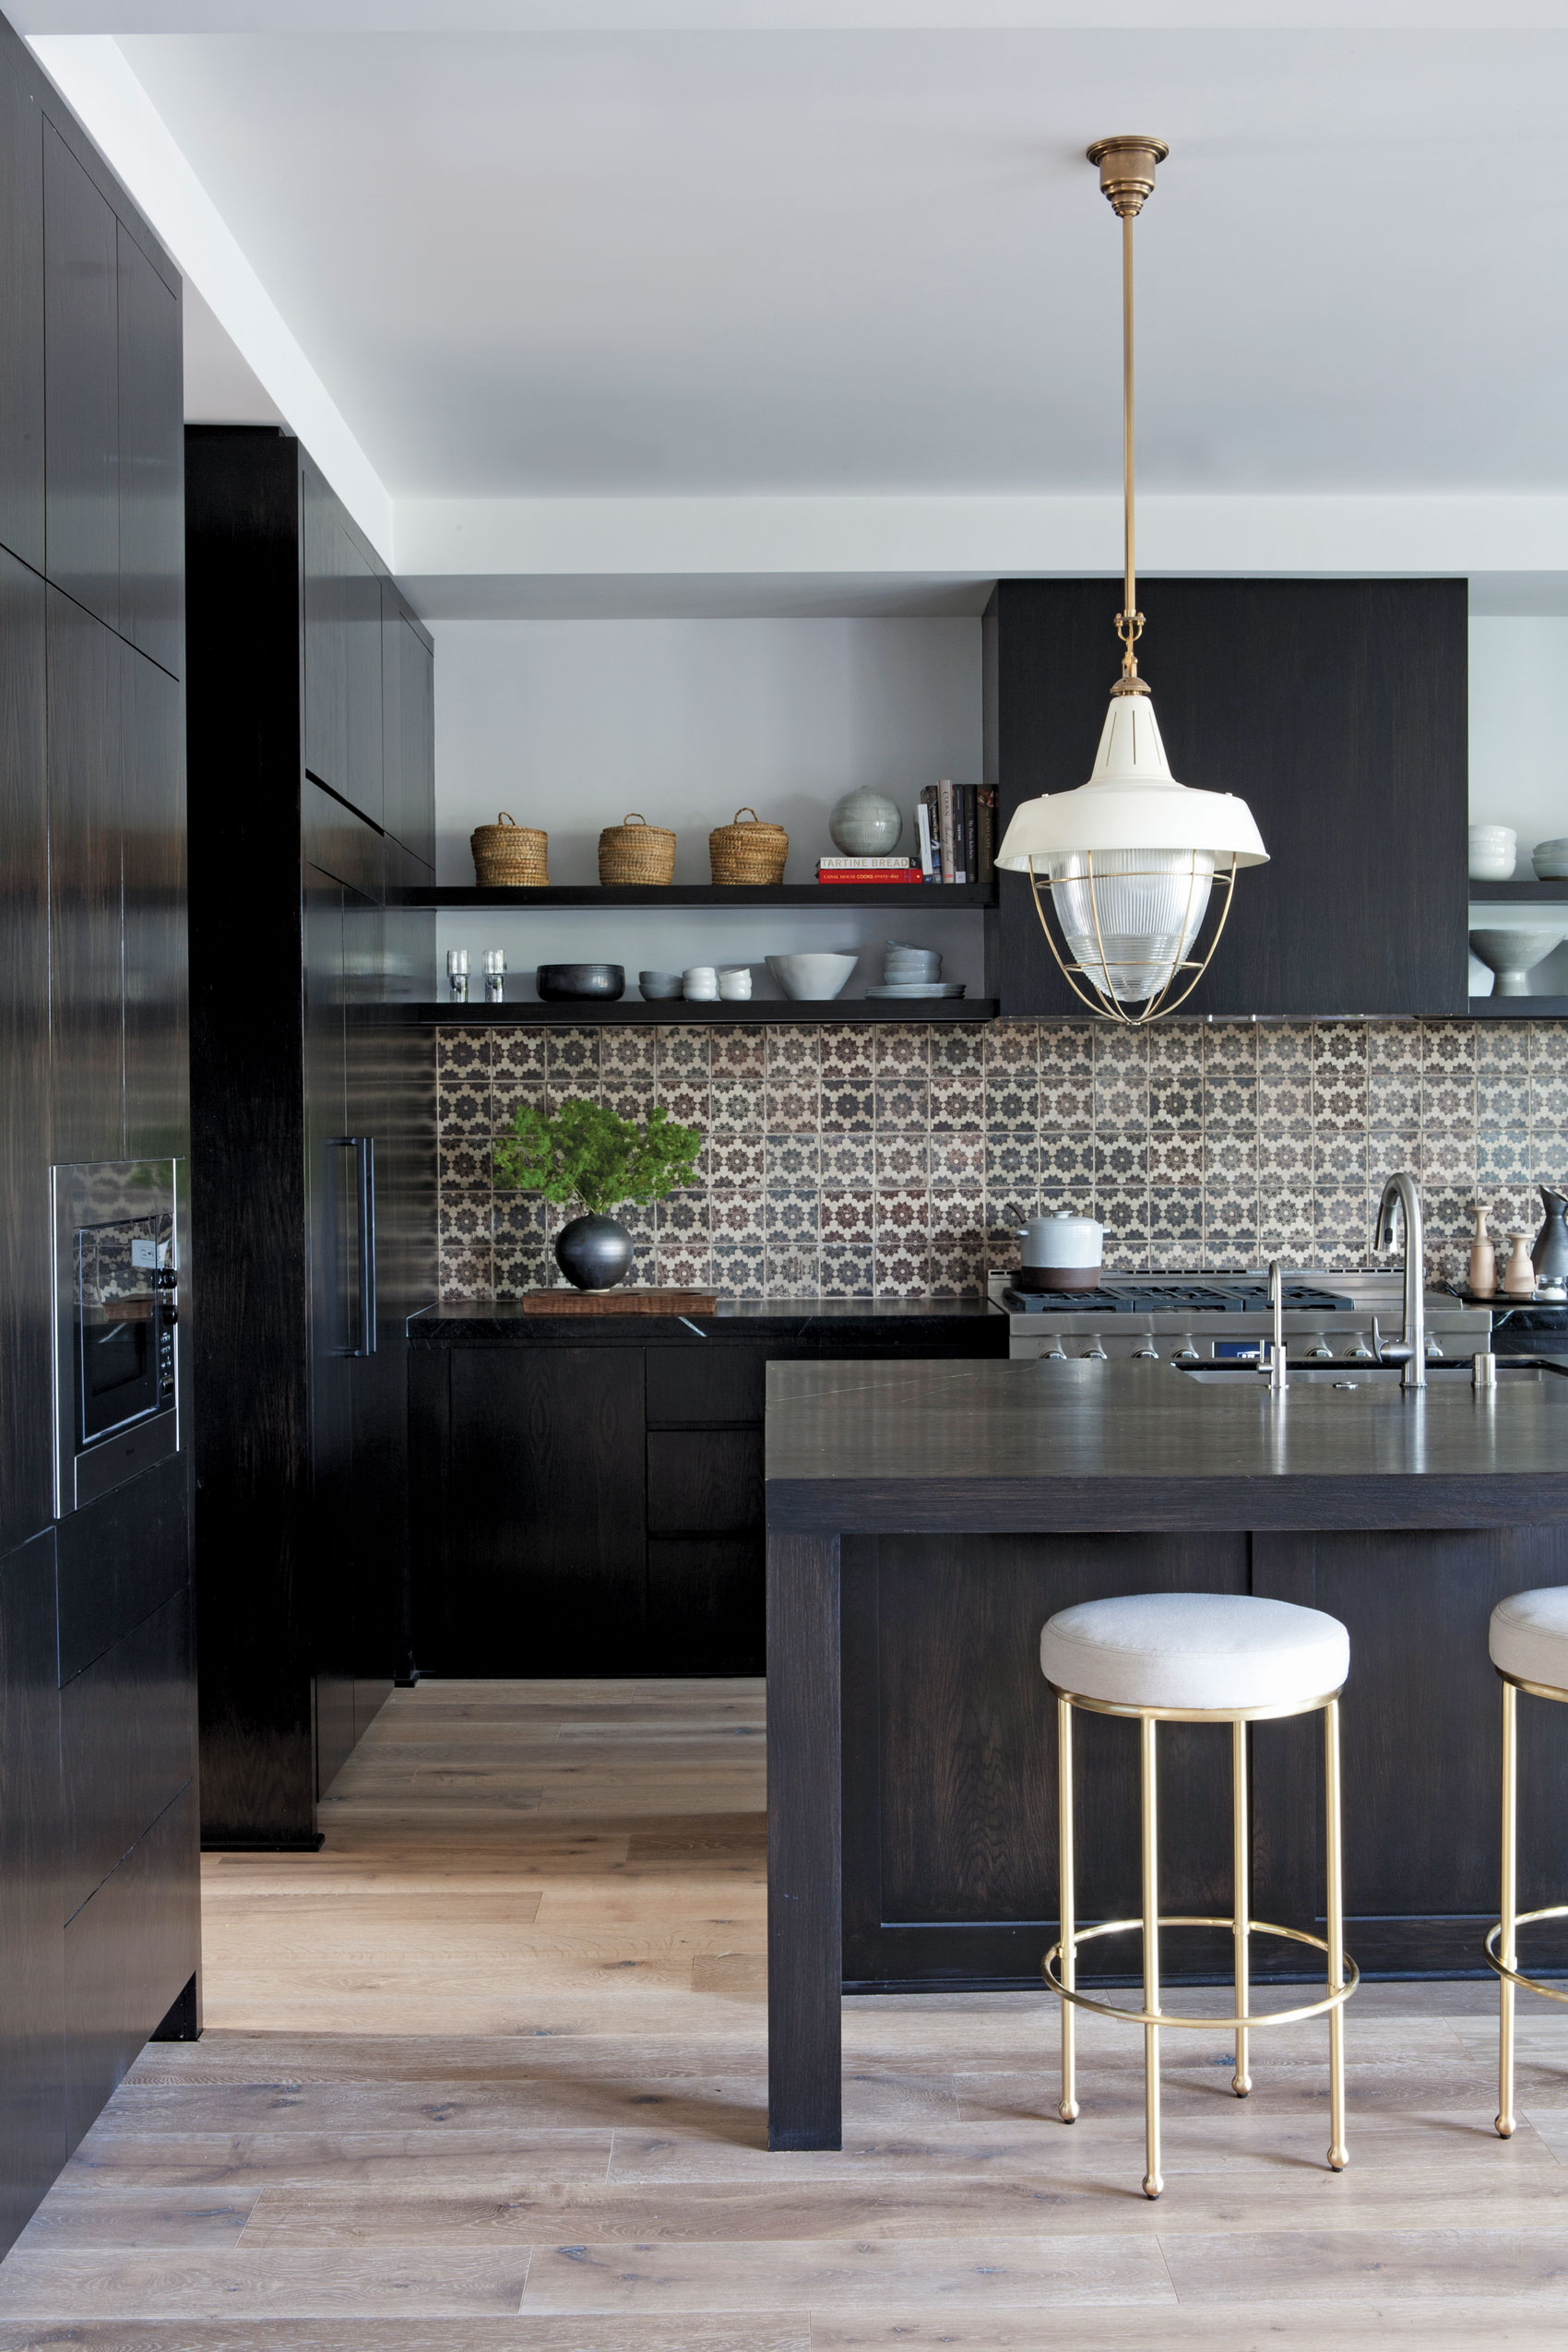 Light hardwood floors contrast black kitchen islands with tile backsplash